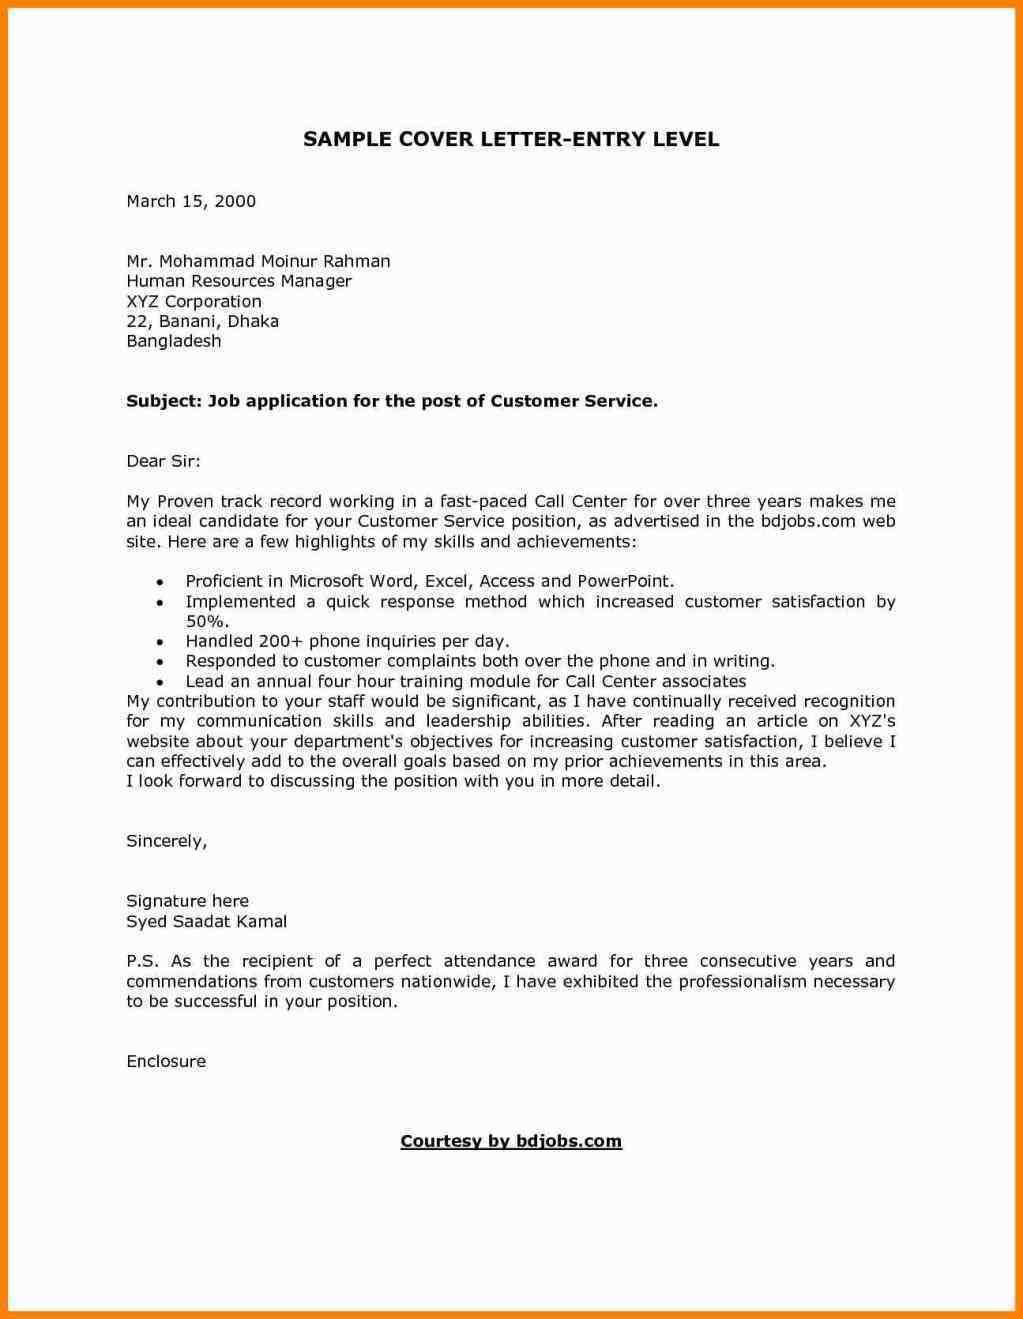 Nestle Cover Letter Good cover letter examples, Cover